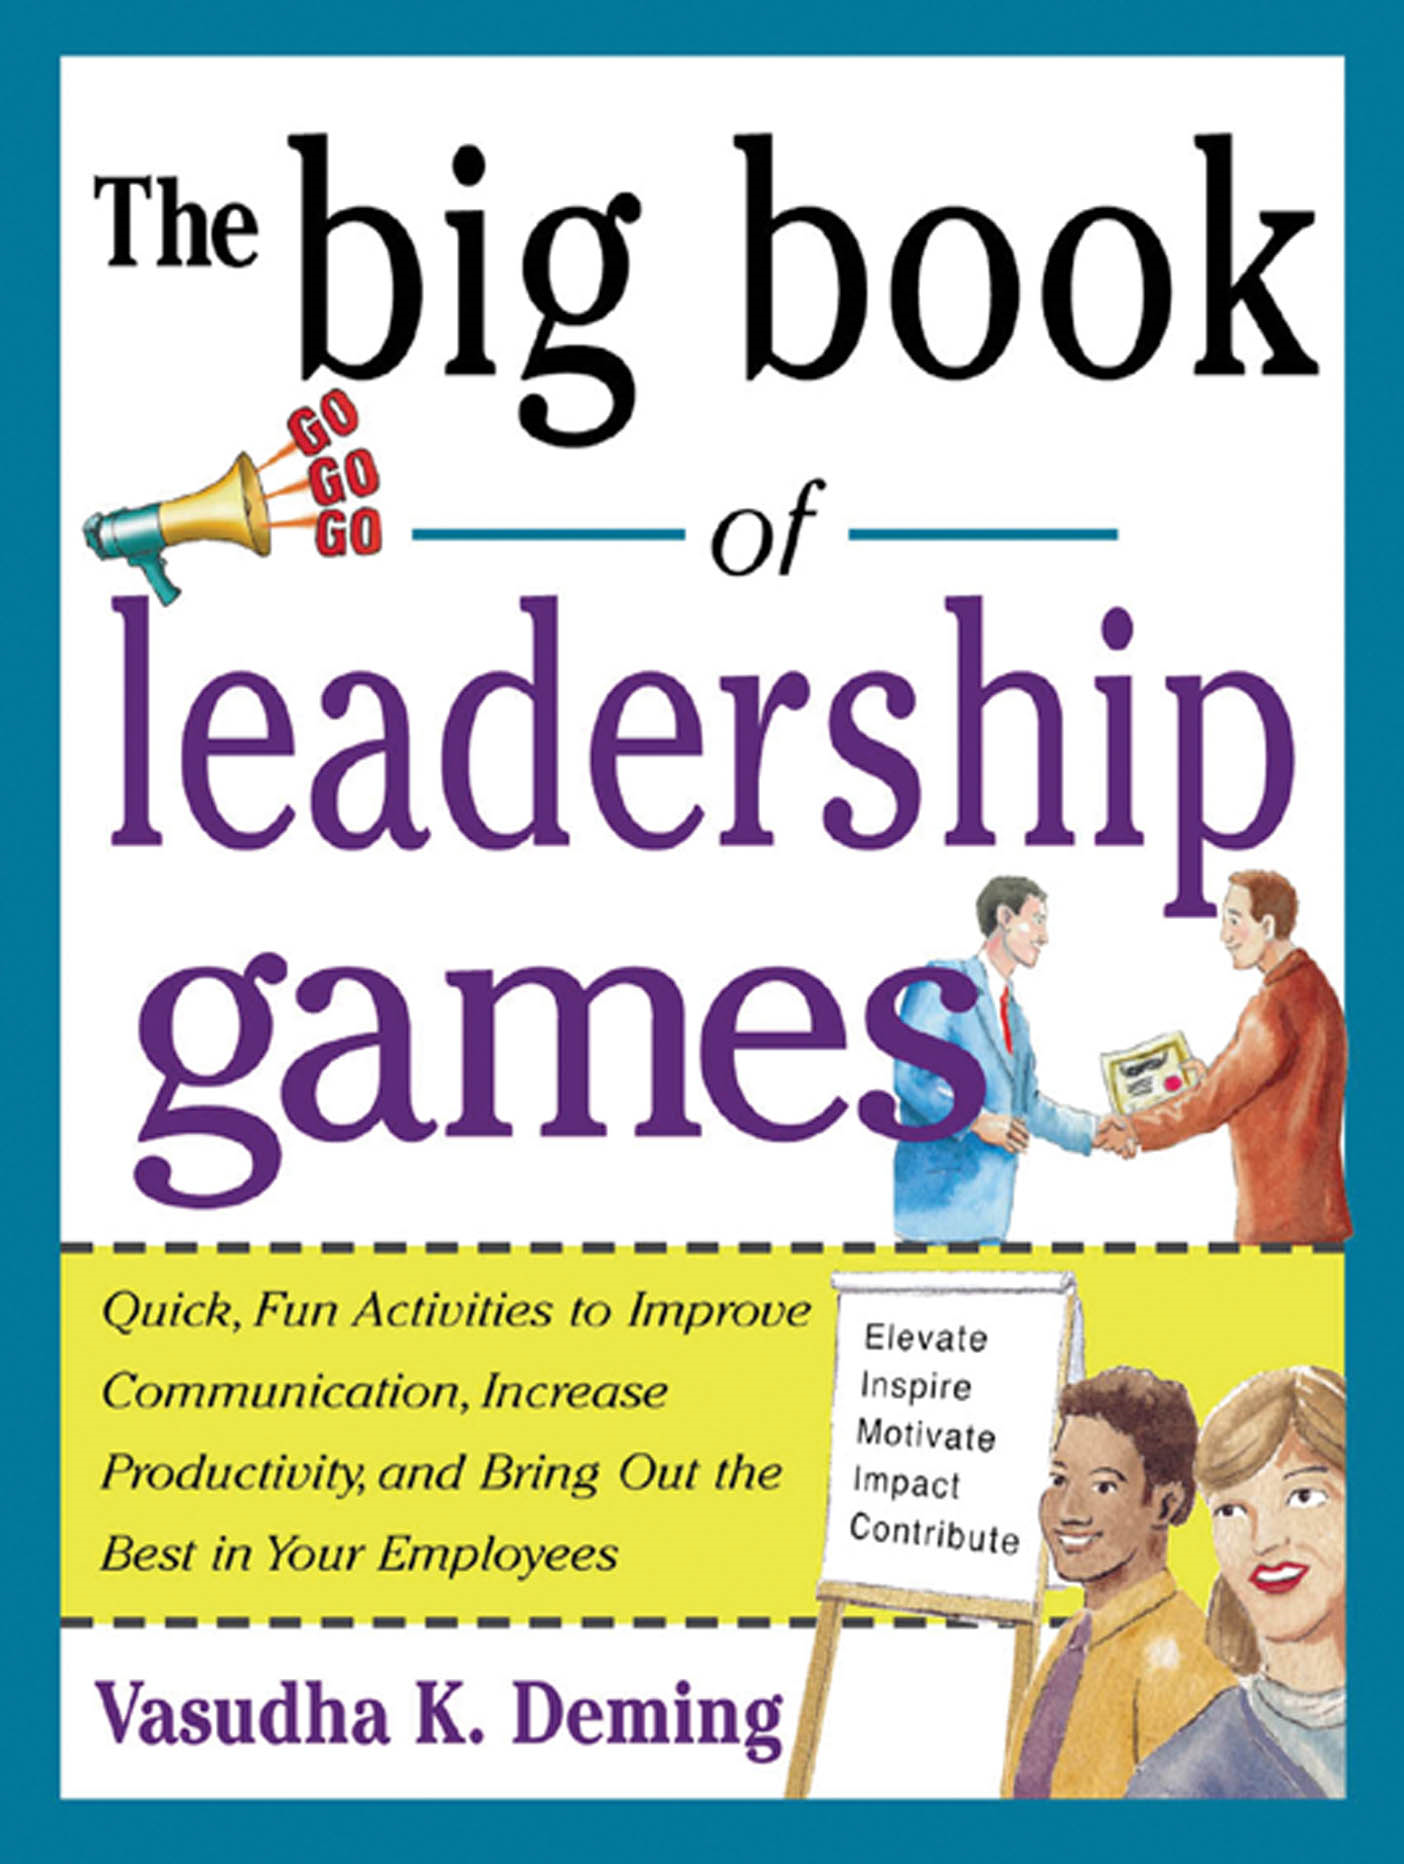 The Big Book of Leadership Games: Quick, Fun Activities to Improve Communication, Increase Productivity, and Bring Out the Best in Employees : Quick, Fun, Activities to Improve Communication, Increase Productivity, and Bring Out the Best In Yo By: Vasudha Deming